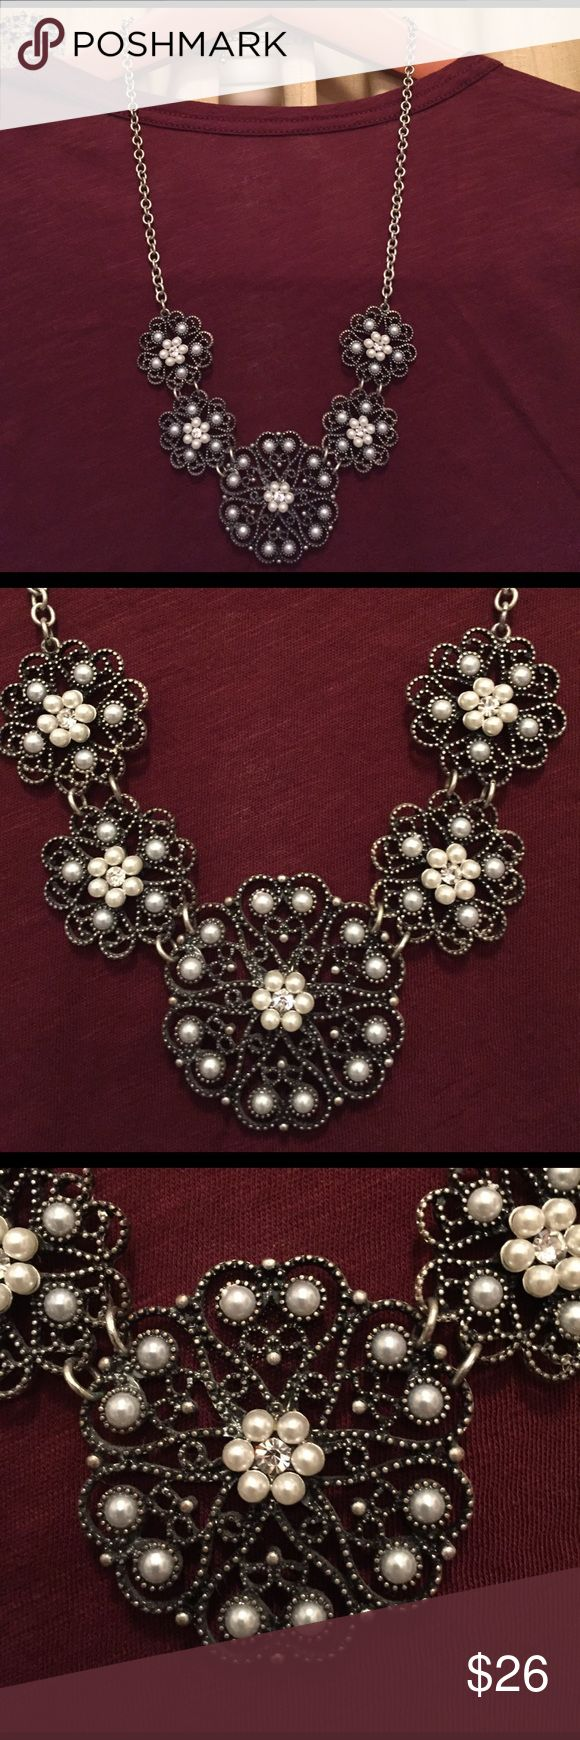 """Susan Graver Necklace Susan Graver Necklace - Silver tone necklace with white/light grey pearls and crystals. It measures 23"""" when laying flat but the necklace curves so measures Approx. 26"""" Excellent condition. Susan Graver Jewelry Necklaces"""